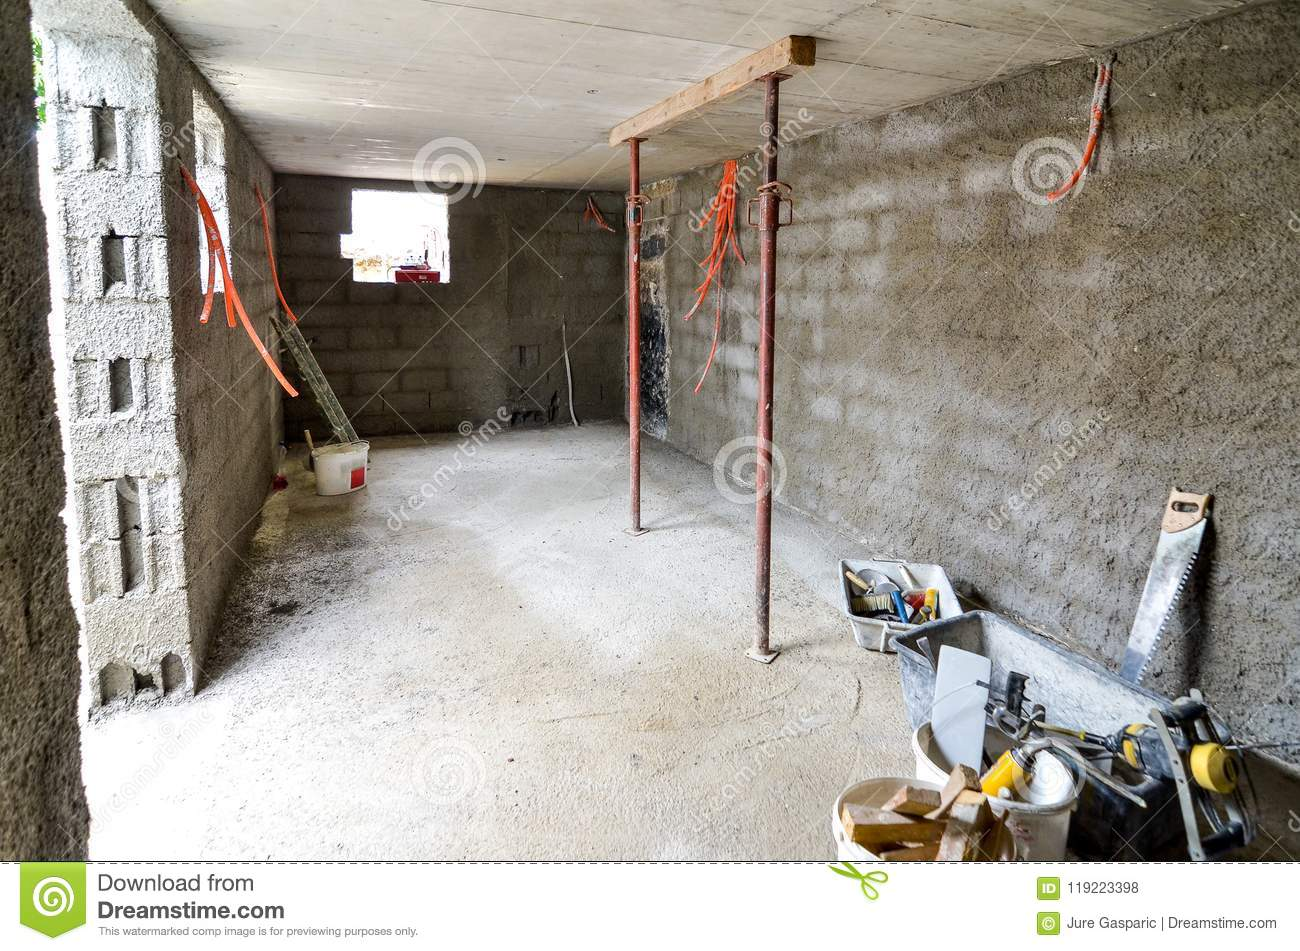 Plastering, rebuilding, waterproofing basement or a cellar and w